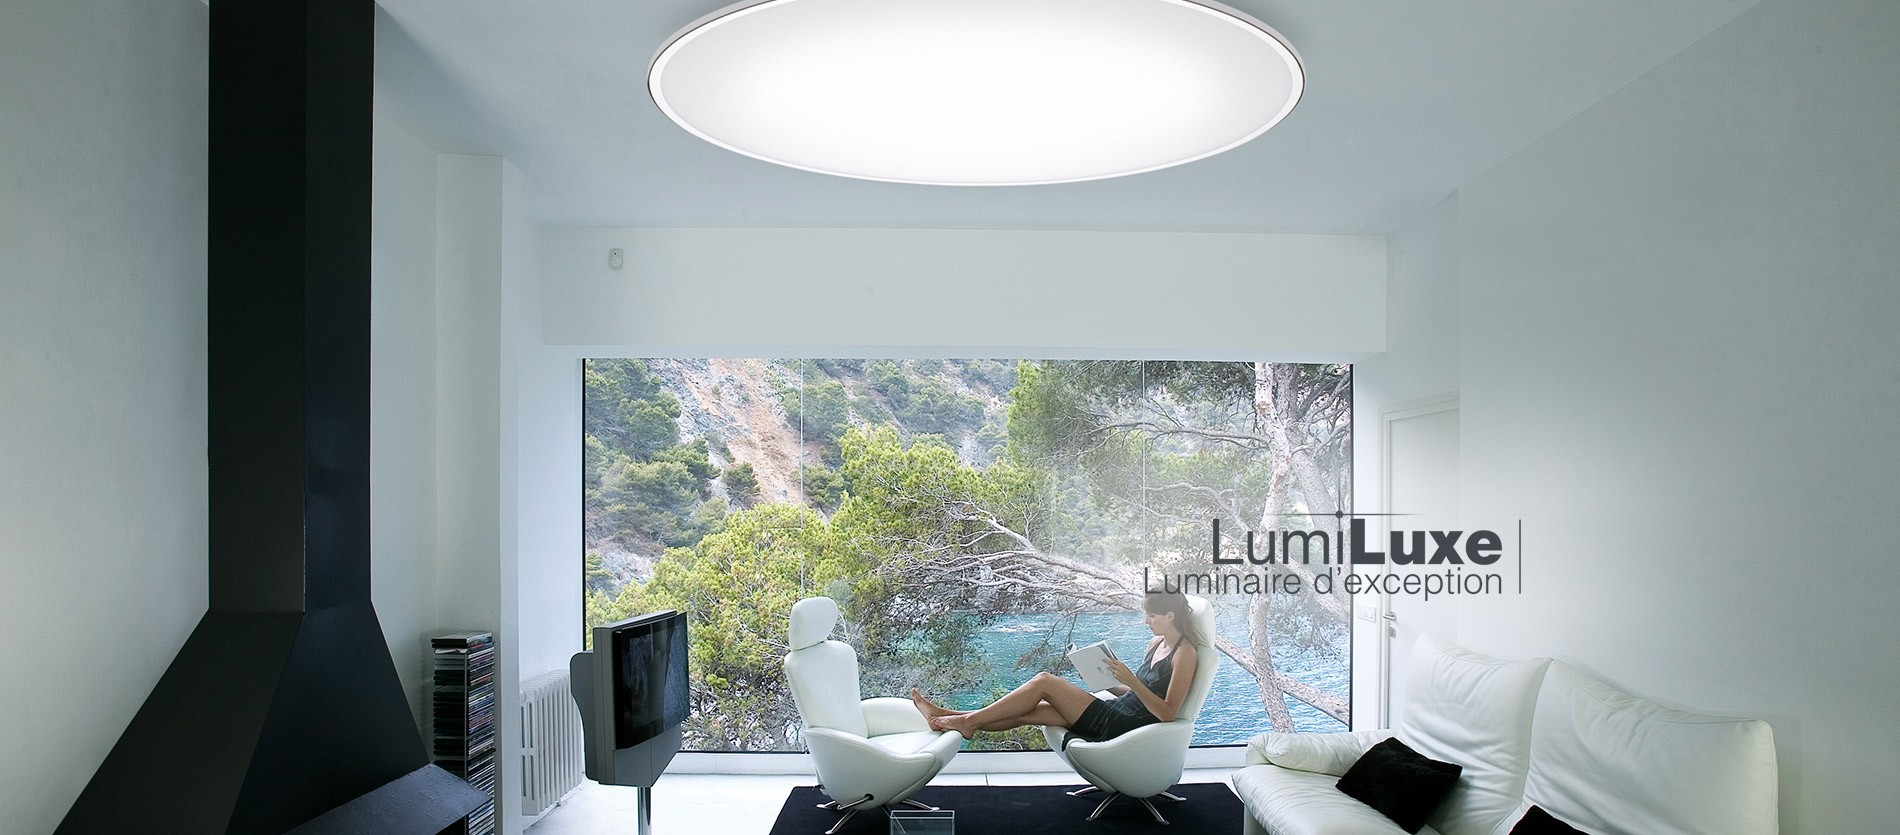 lumiluxe fournisseur de luminaires de haut de gamme lumiluxe. Black Bedroom Furniture Sets. Home Design Ideas